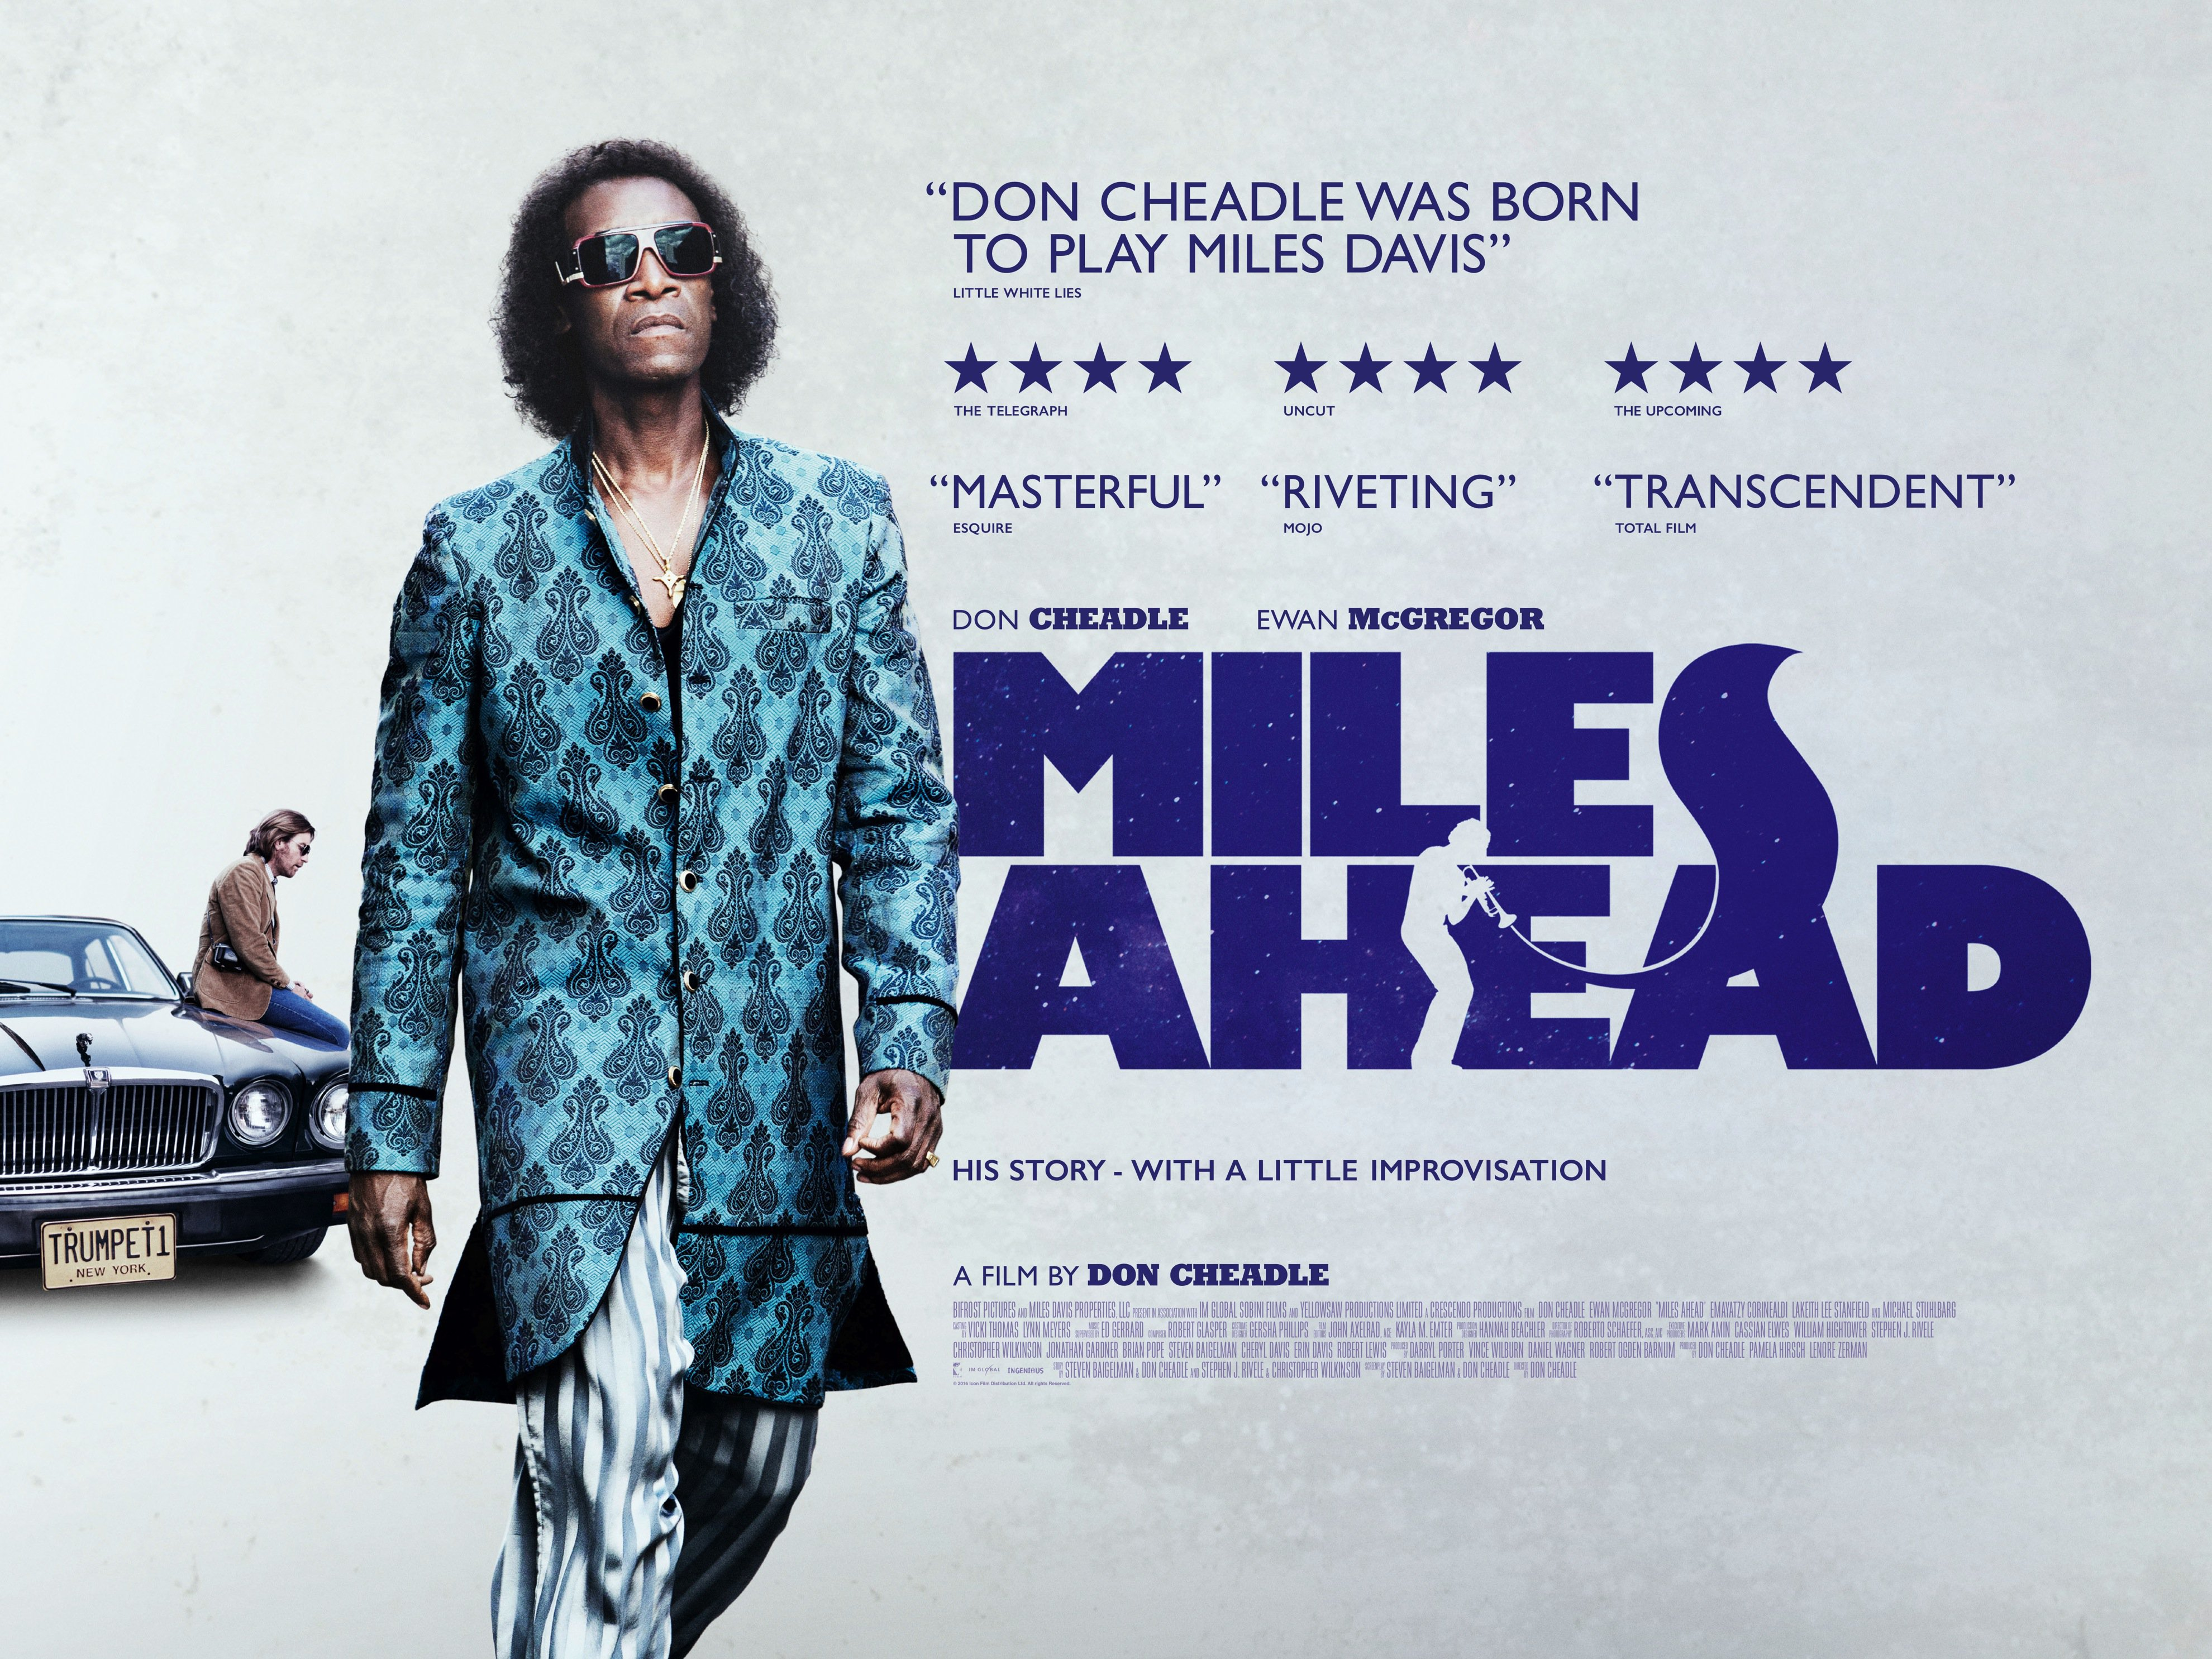 miles-ahead-2015-don-cheadle-as-miles-davis-pelicula-film-poster